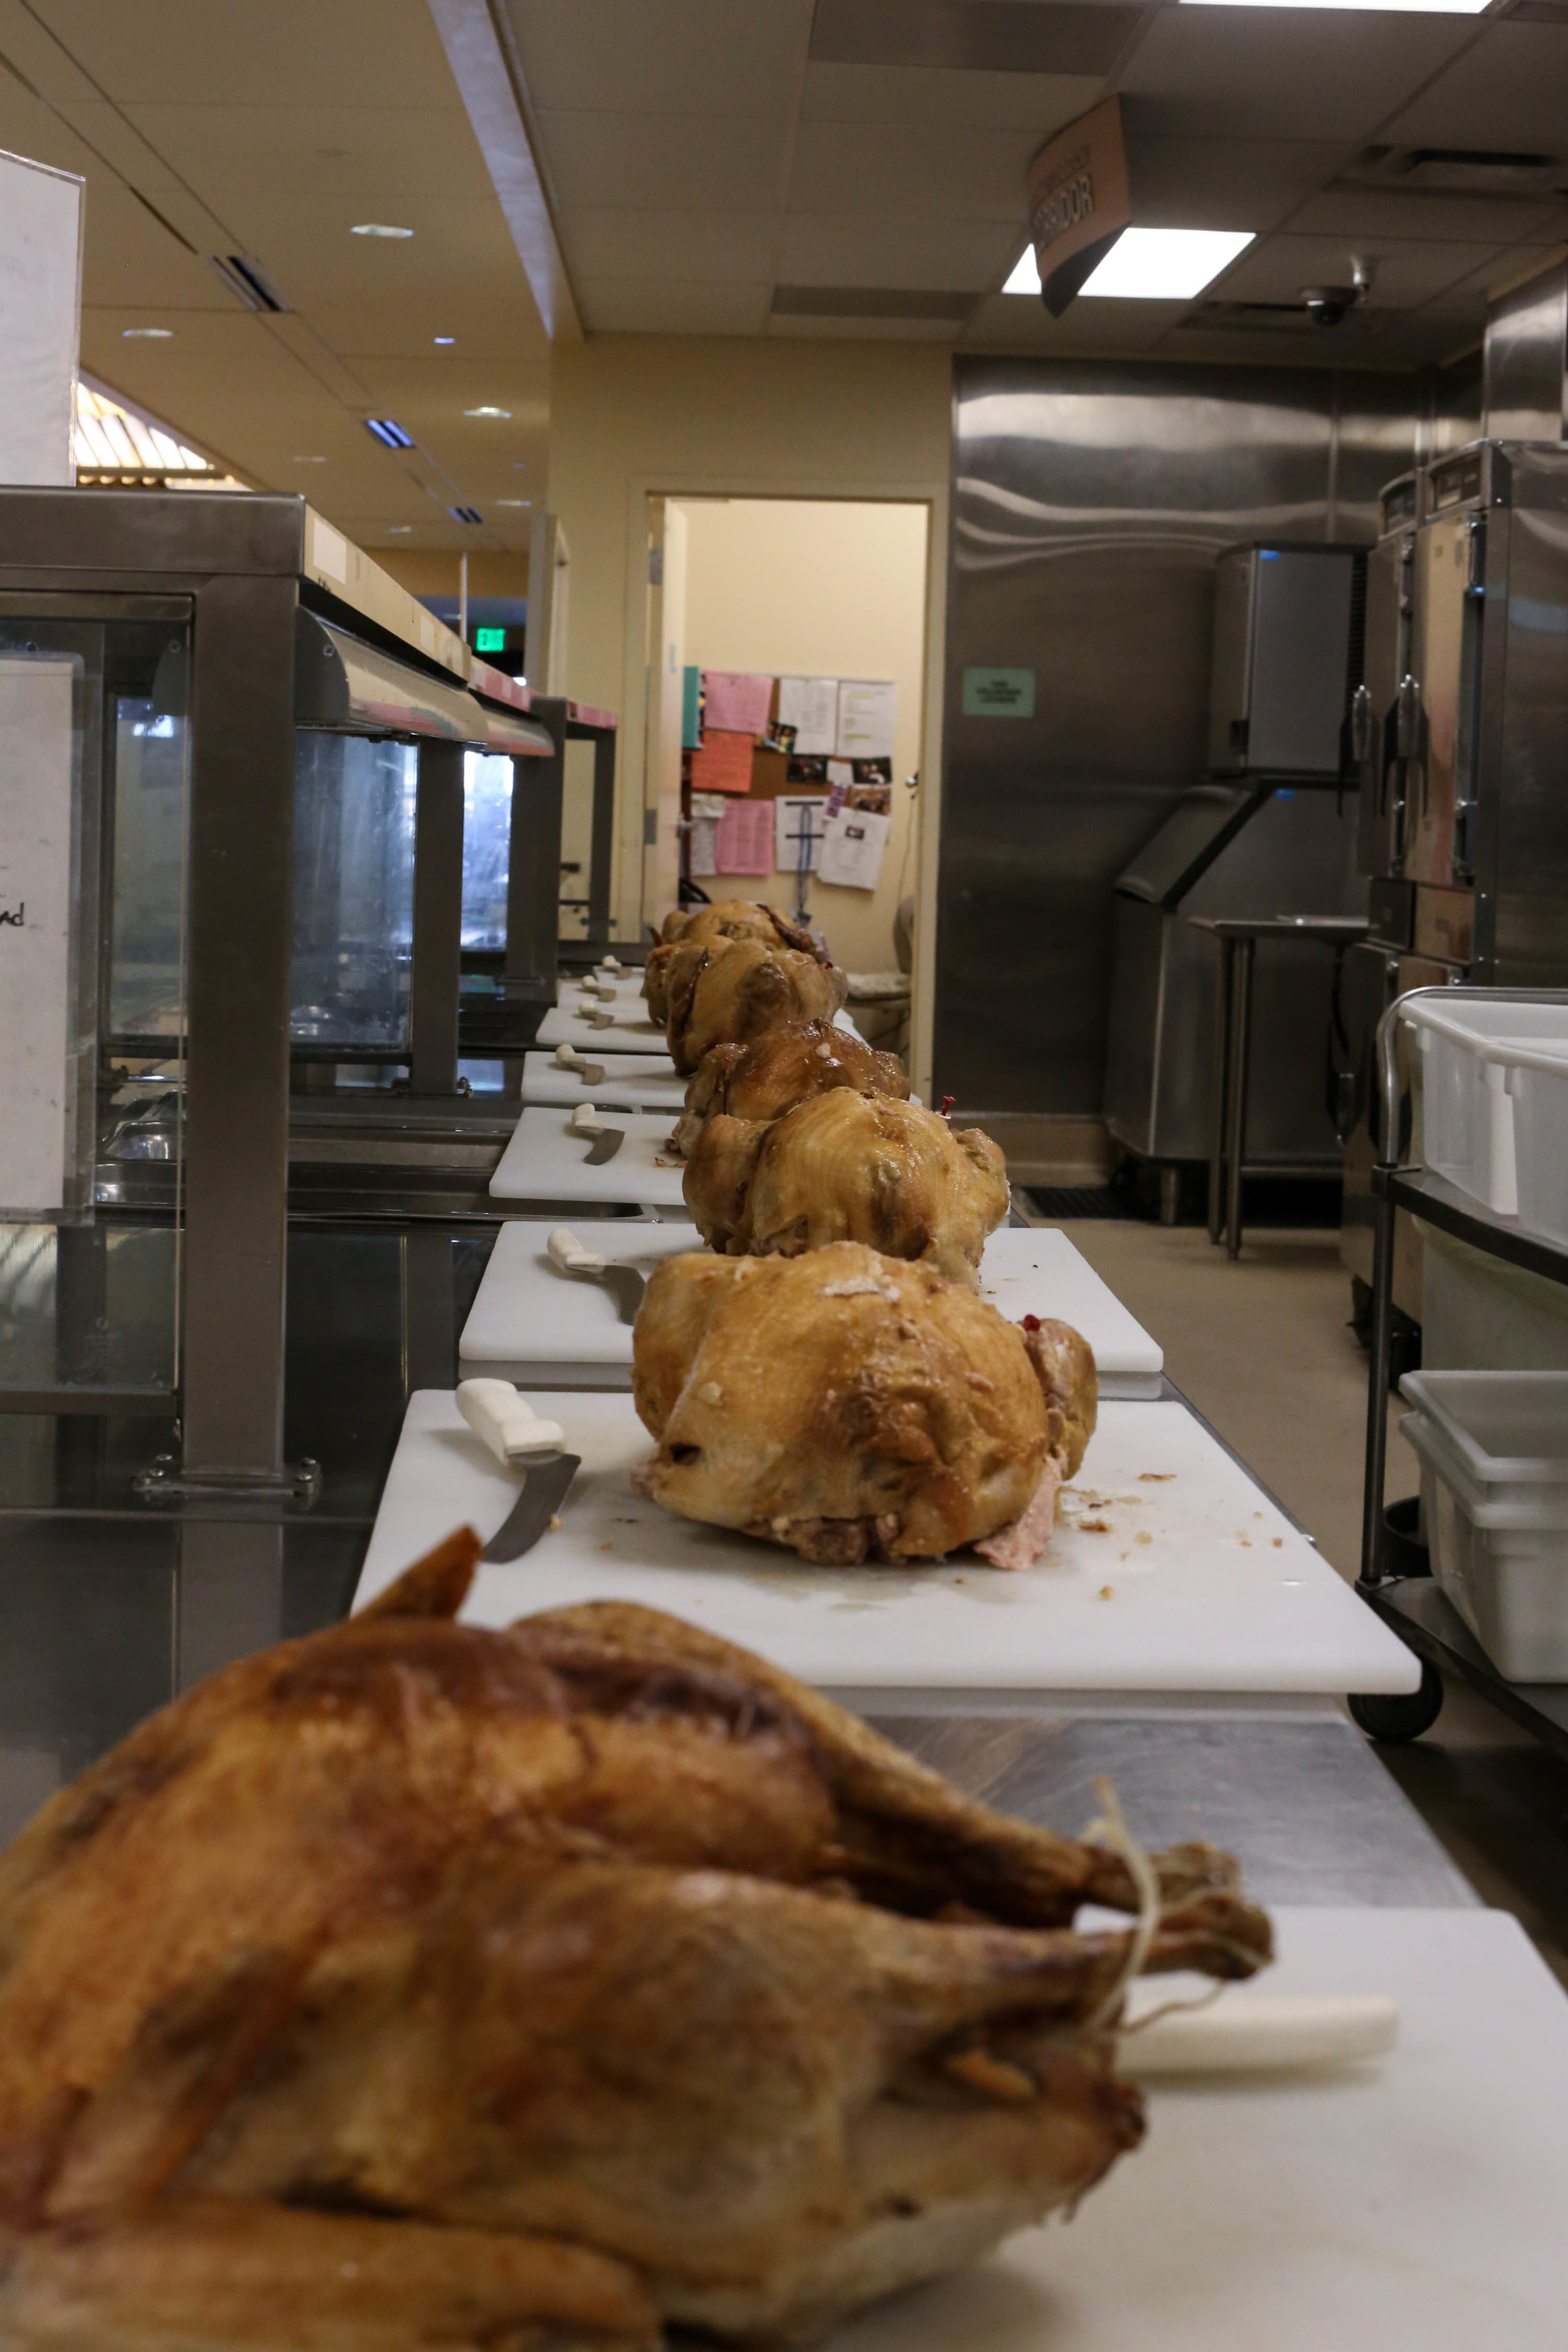 Turkeys wait to be carved at St. Anthony's for the Thanksgiving Day meals that will serve over 3,500 homeless in Mid-Market, San Francisco, California, Wednesday, November 23, 2016 (Jessica Webb)